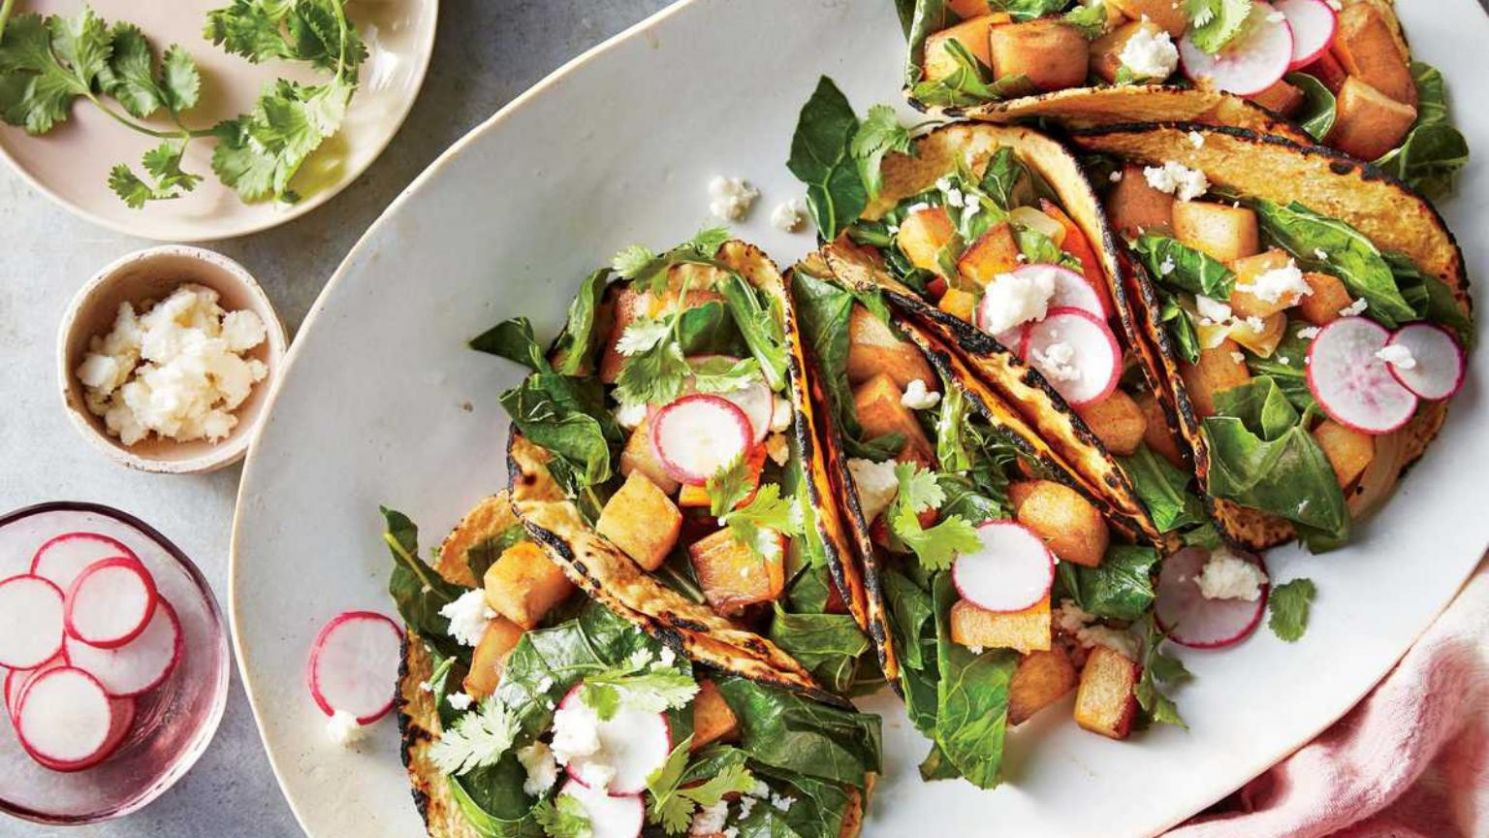 12 Easy Vegetarian Recipes for Busy Weeknights